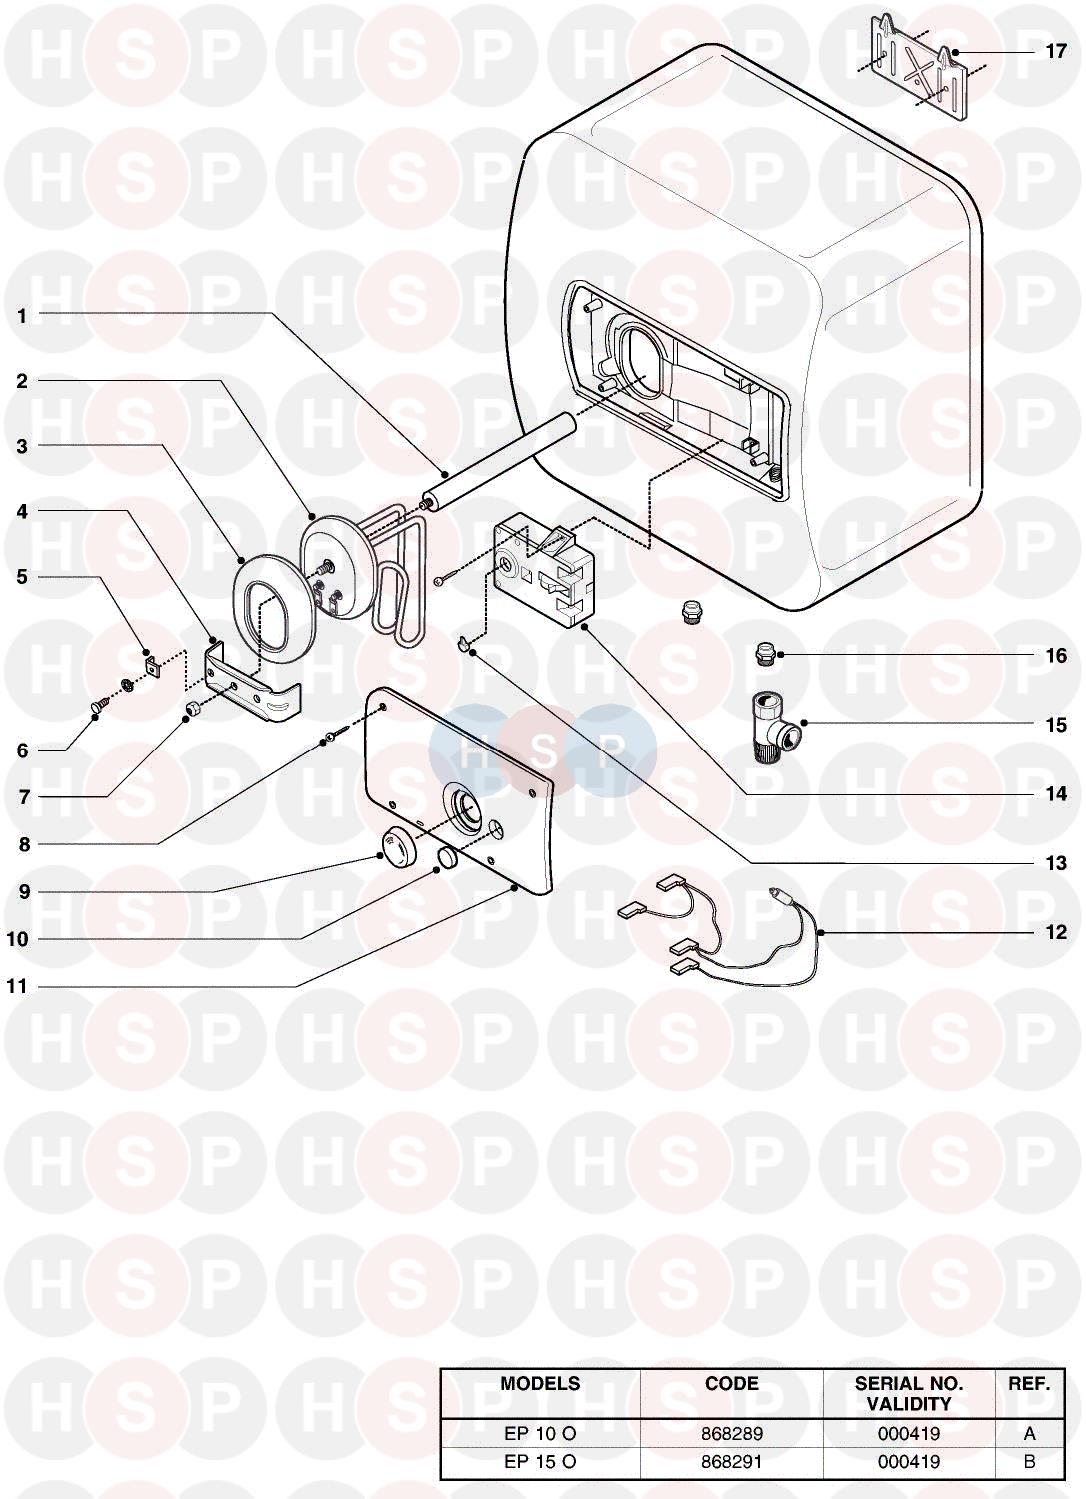 Ariston EP 10 O EDITION 1 Appliance Diagram (EXPLODED VIEW